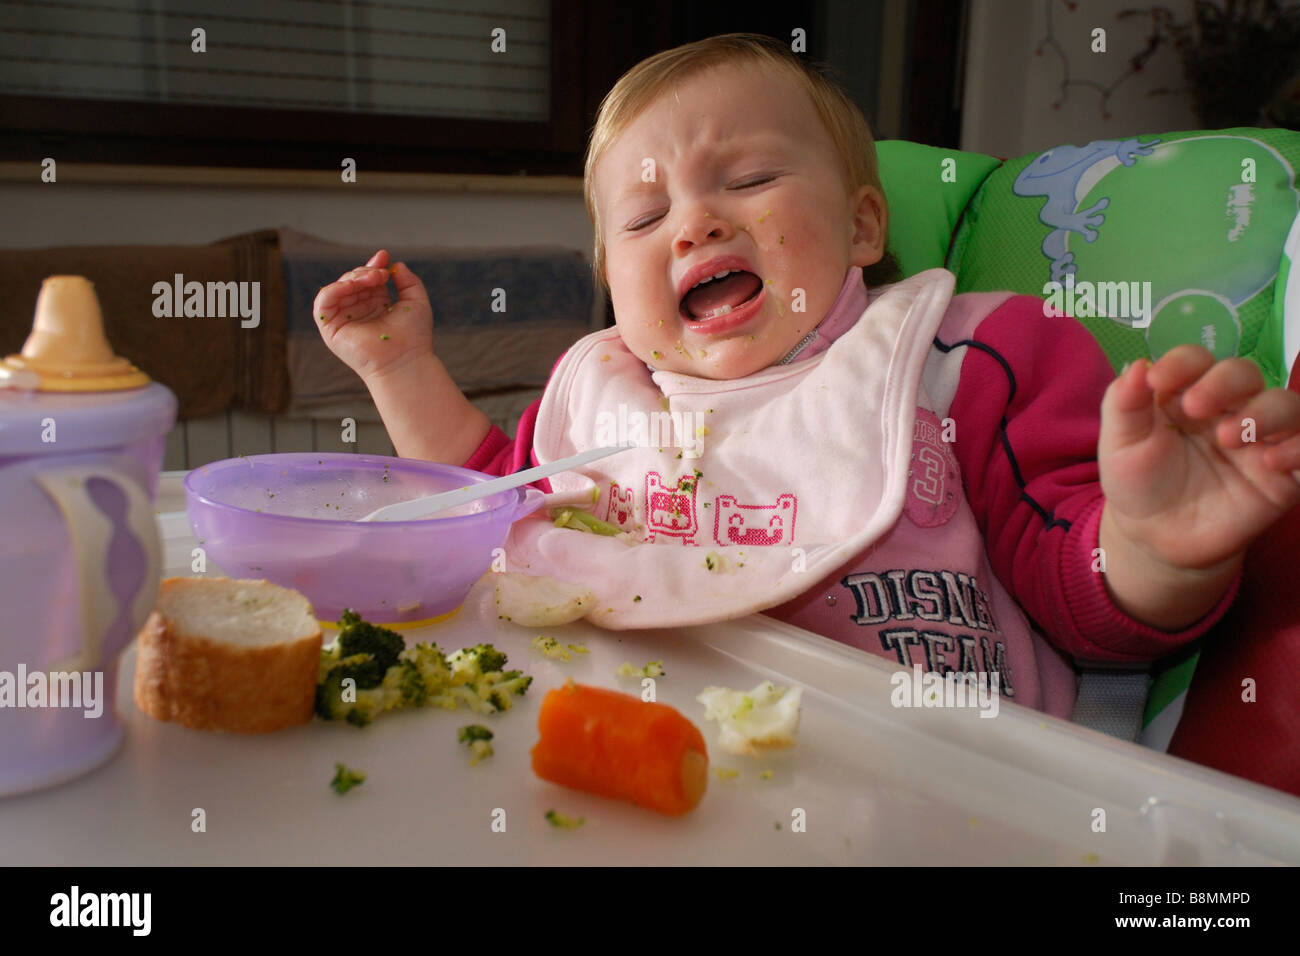 One year old baby girl crying in highchair at meal time - Stock Image